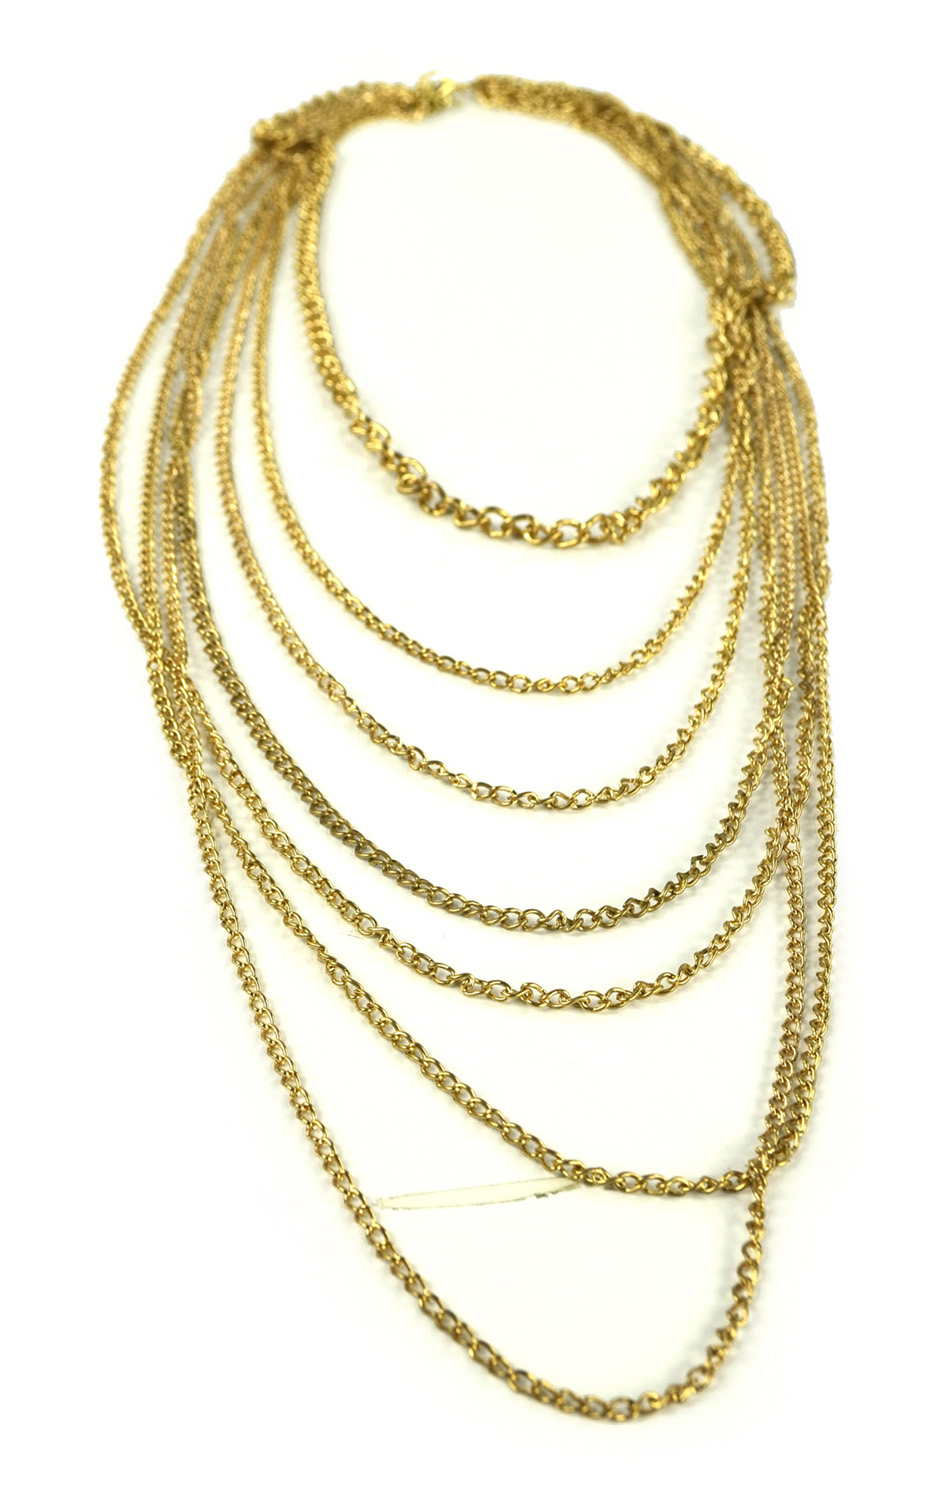 Belle Donne Necklace Long Chain Multi Chain or Choker Stone Flowers Hoops - Gold